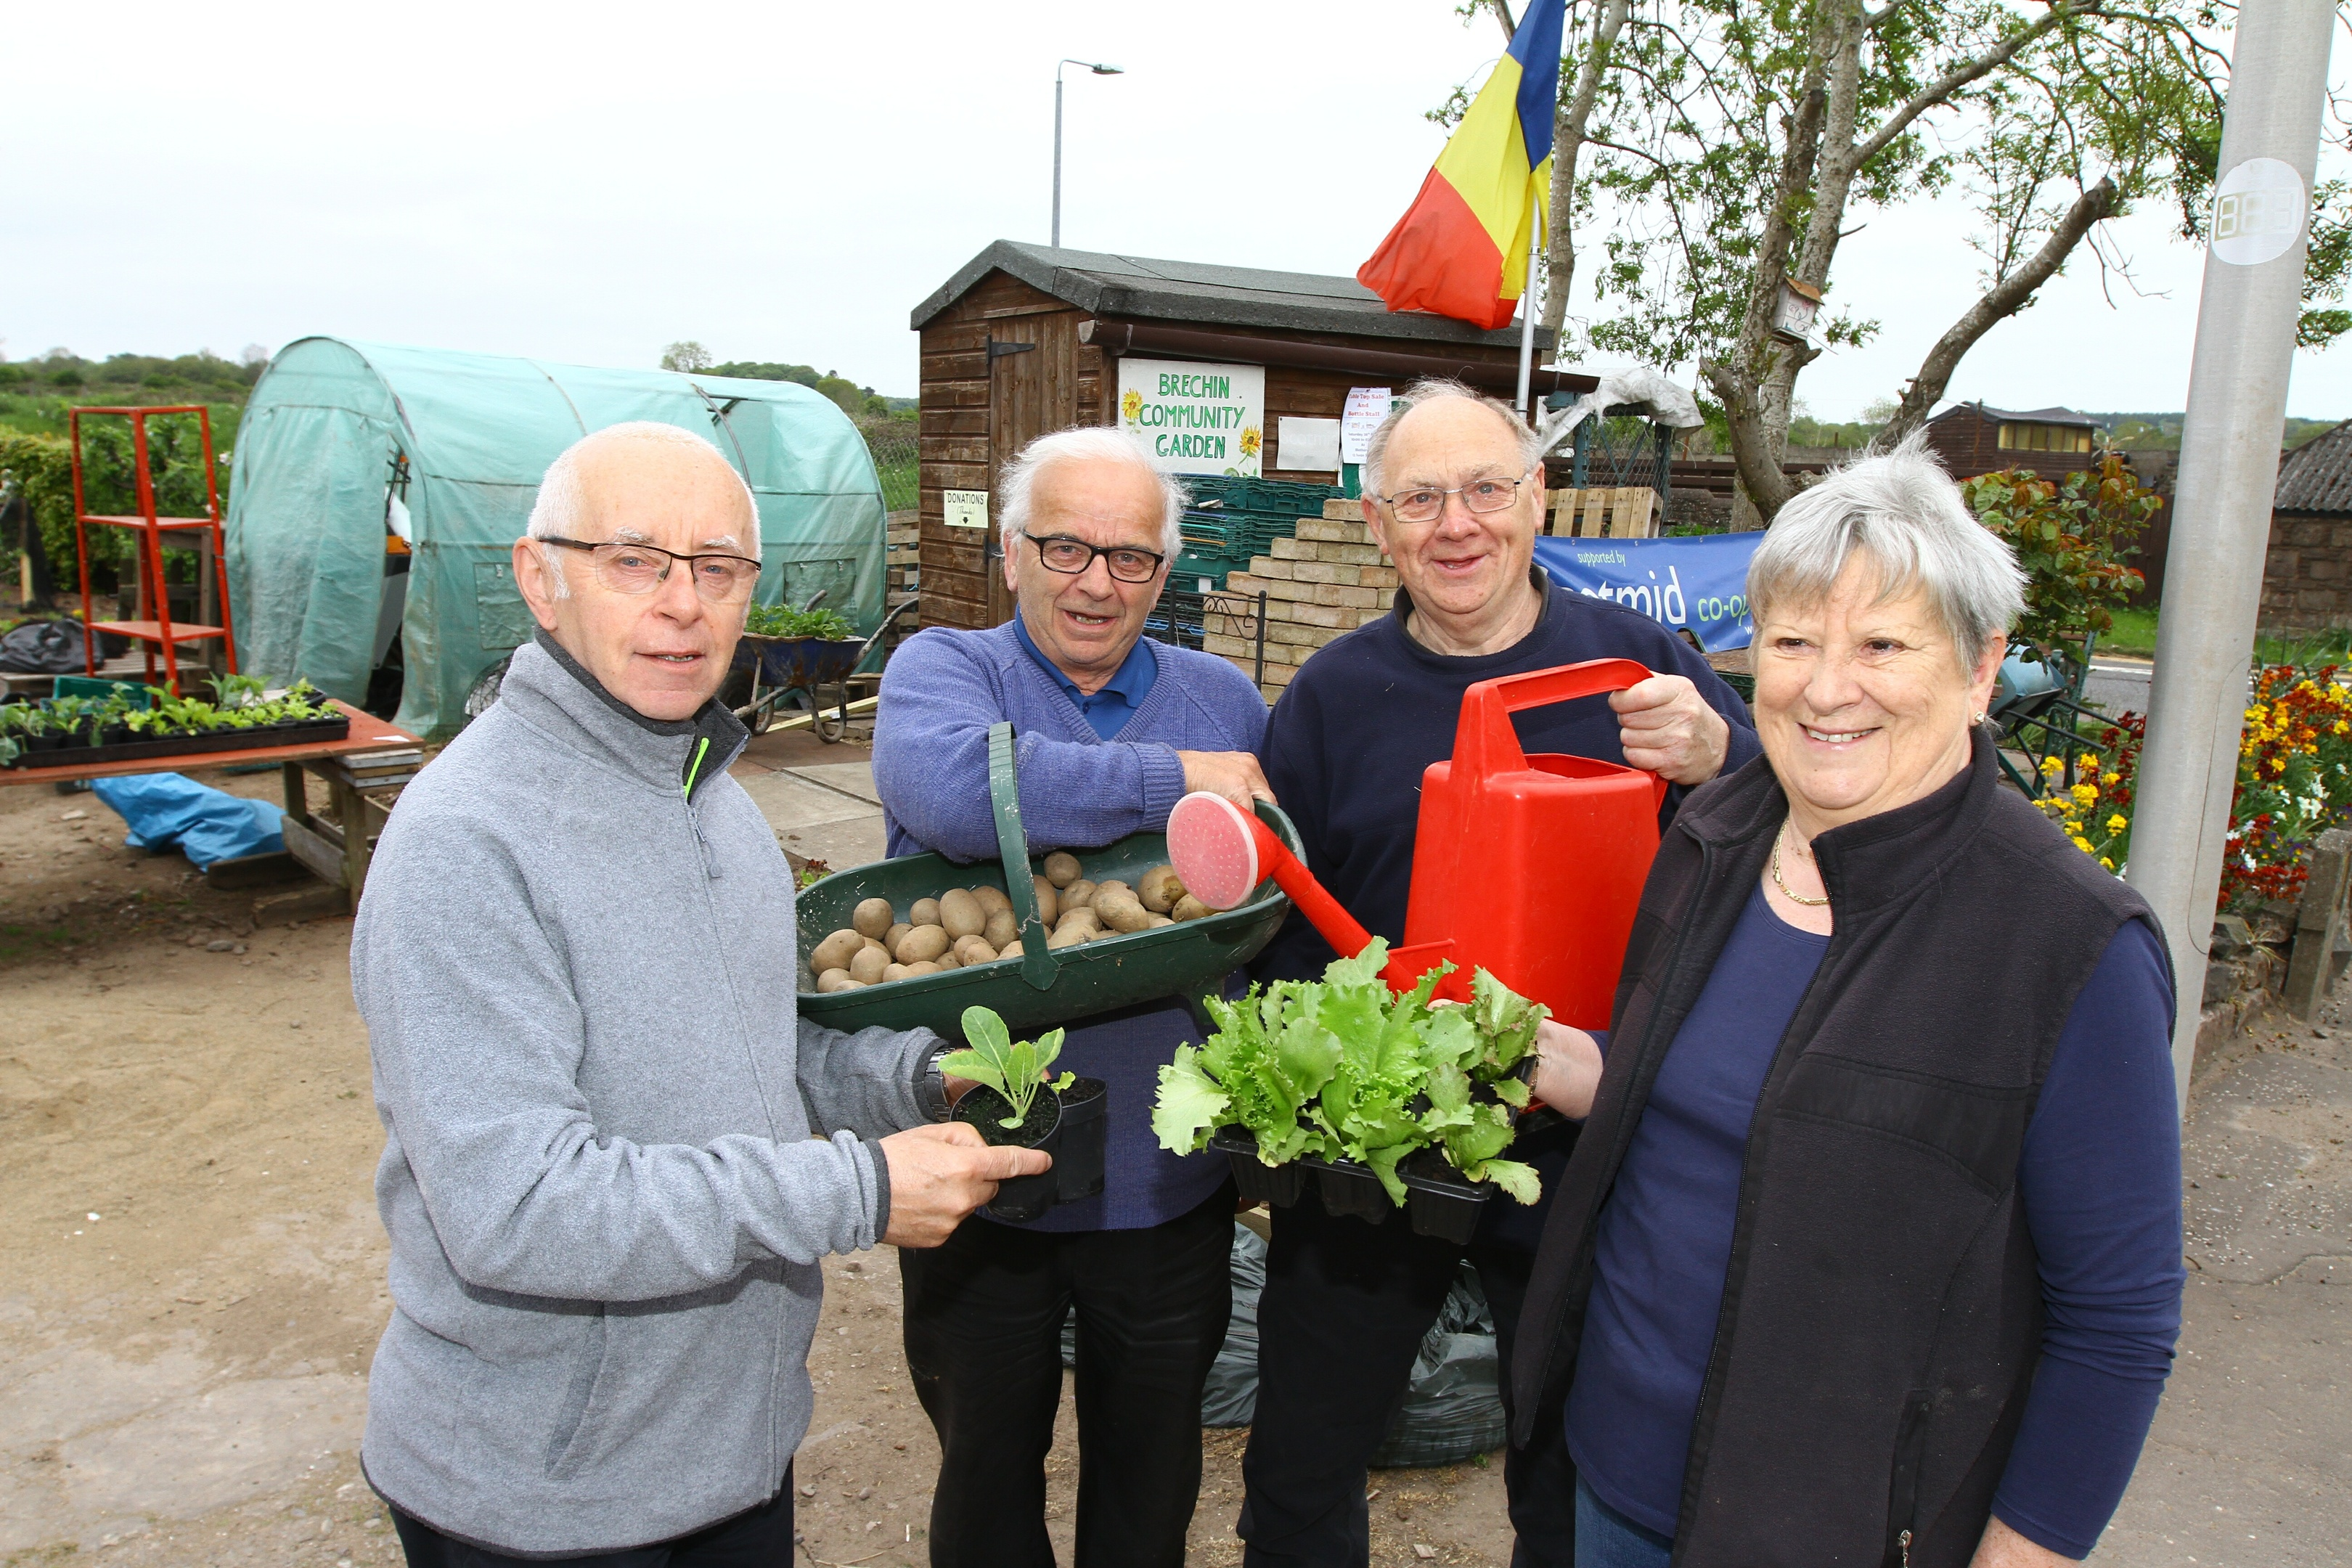 Robert Anderson, Michael Forbes, Michael Cronin and Jess Christie  at the Brechin Community Garden.